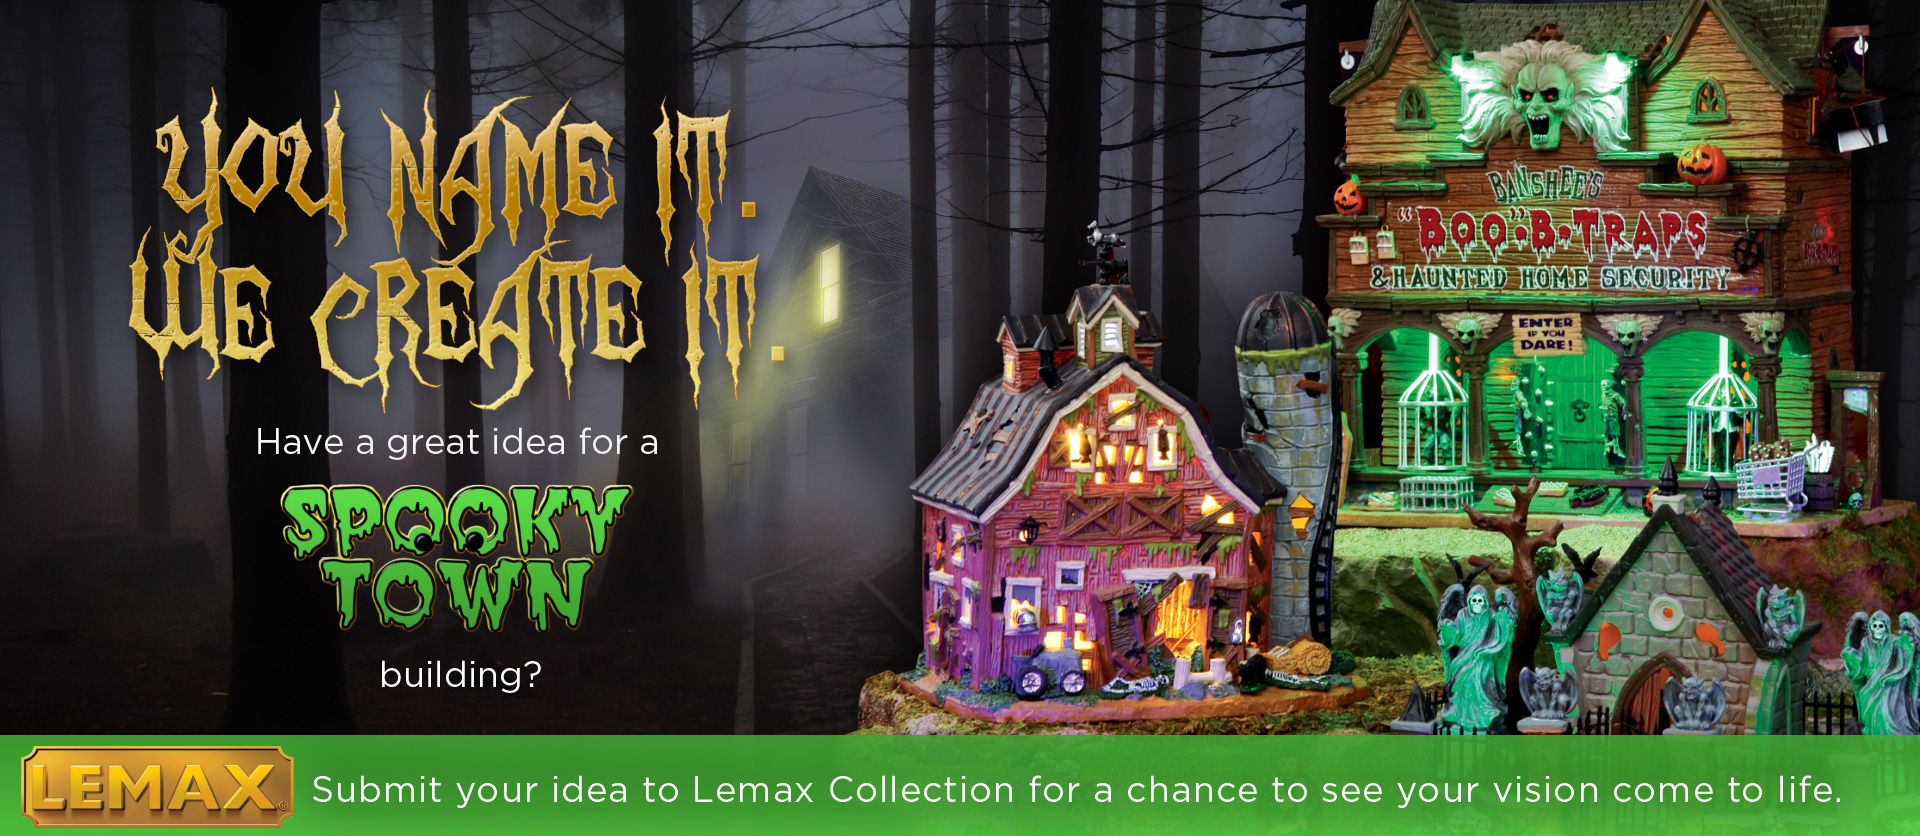 You Name It. We Create It. Halloween 2017 Contest